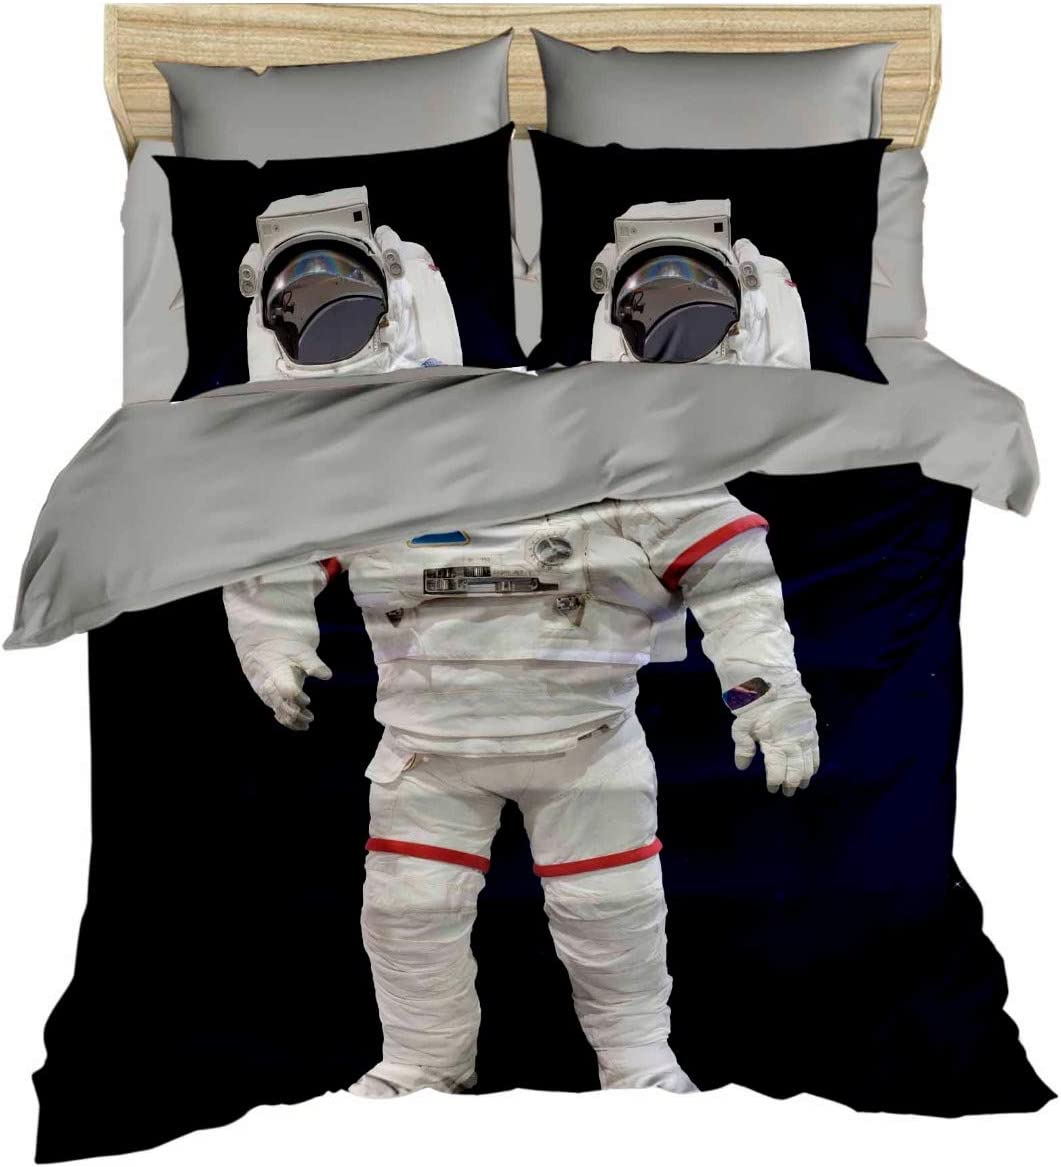 Details about  /Nebula Quilted Bedspread /& Pillow Shams Set Cartoon Astronaut Space Print